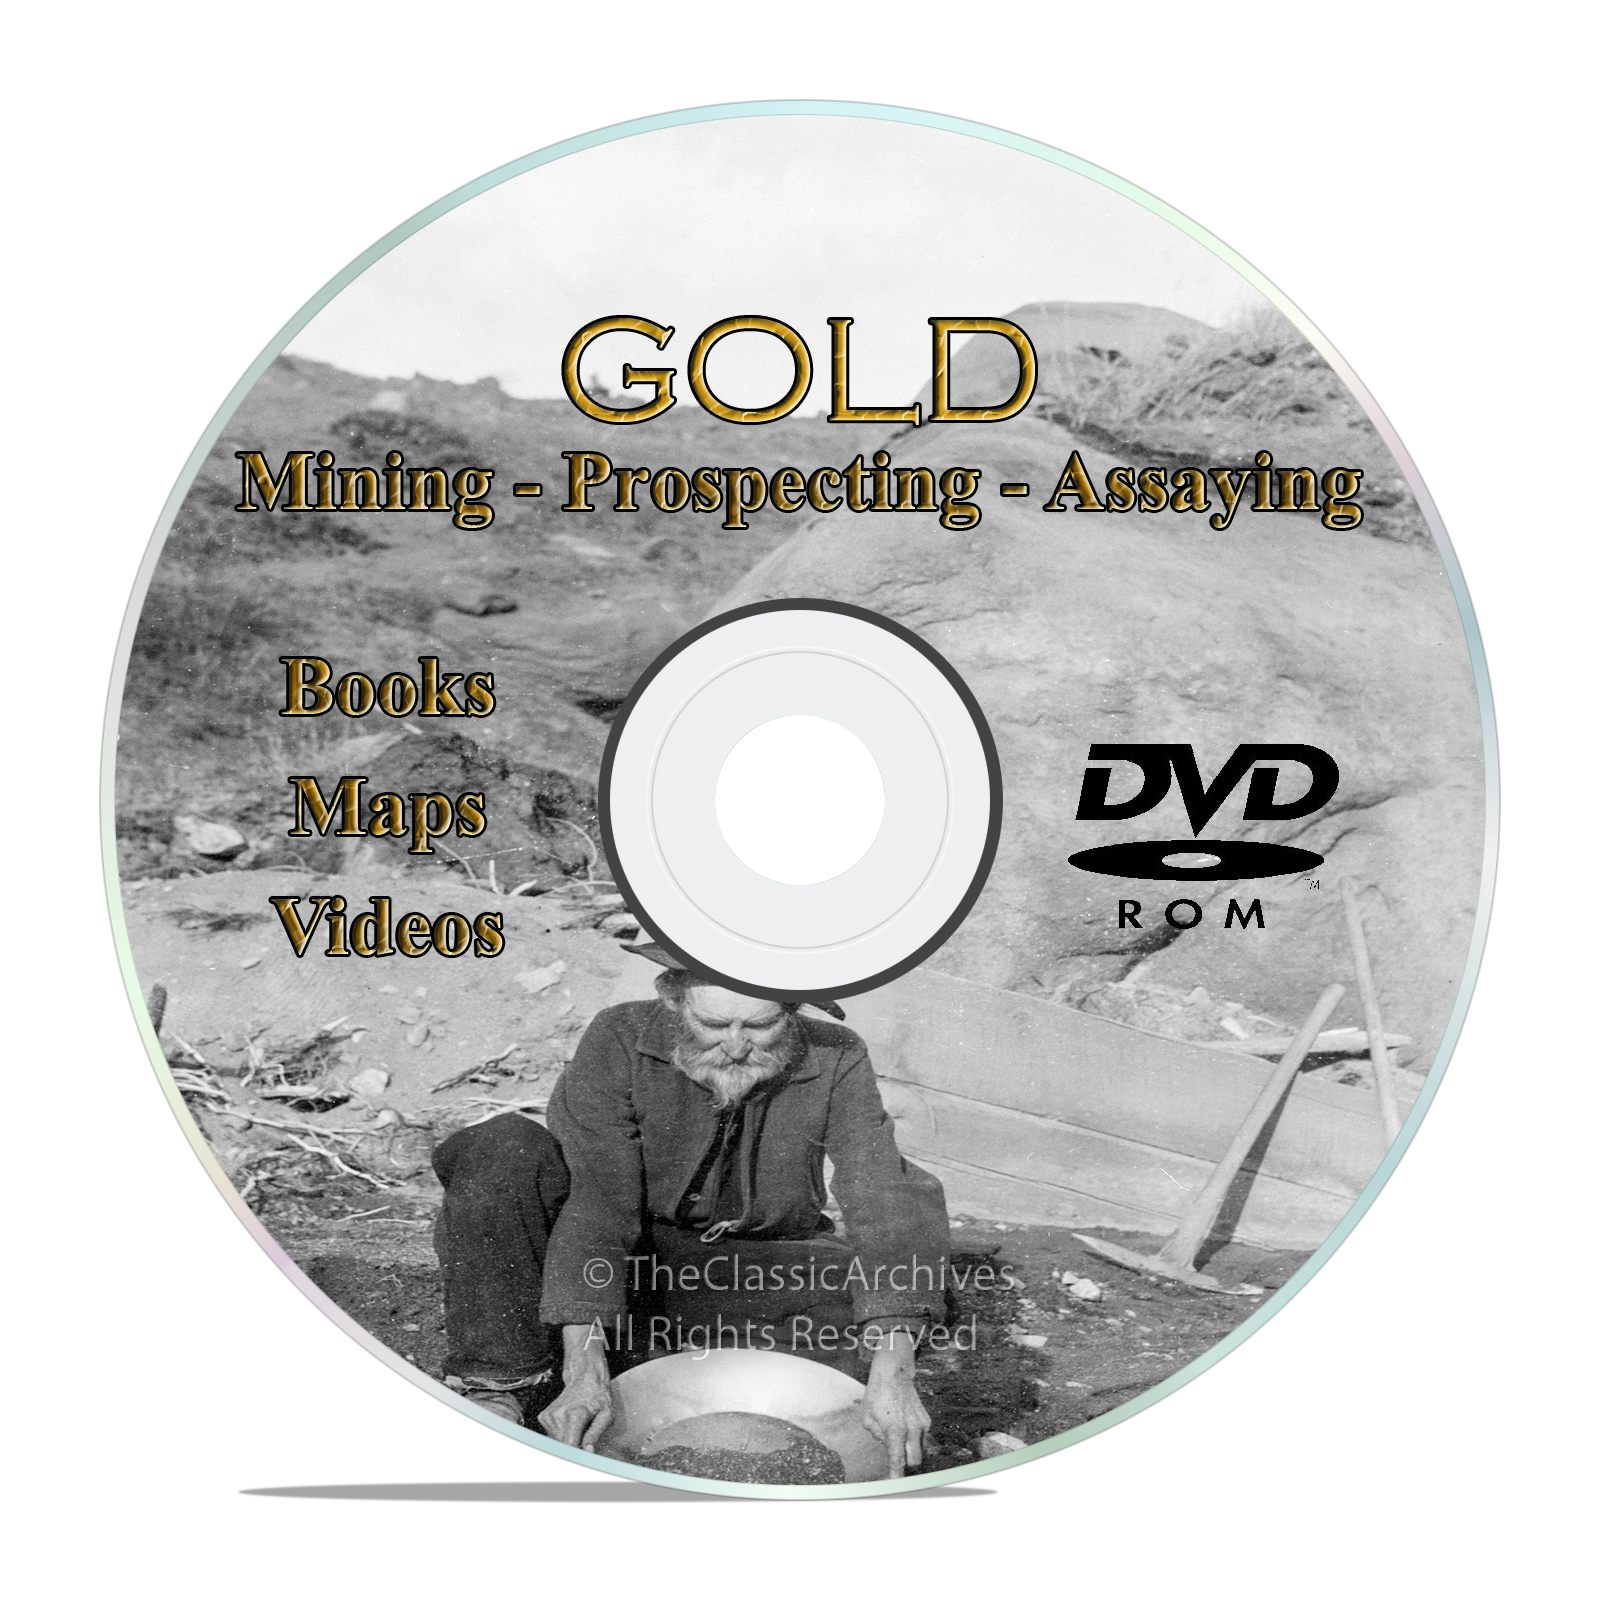 Gold Prospecting Mining Books, Assaying, Refining, Melting, Metallurgy, DVD